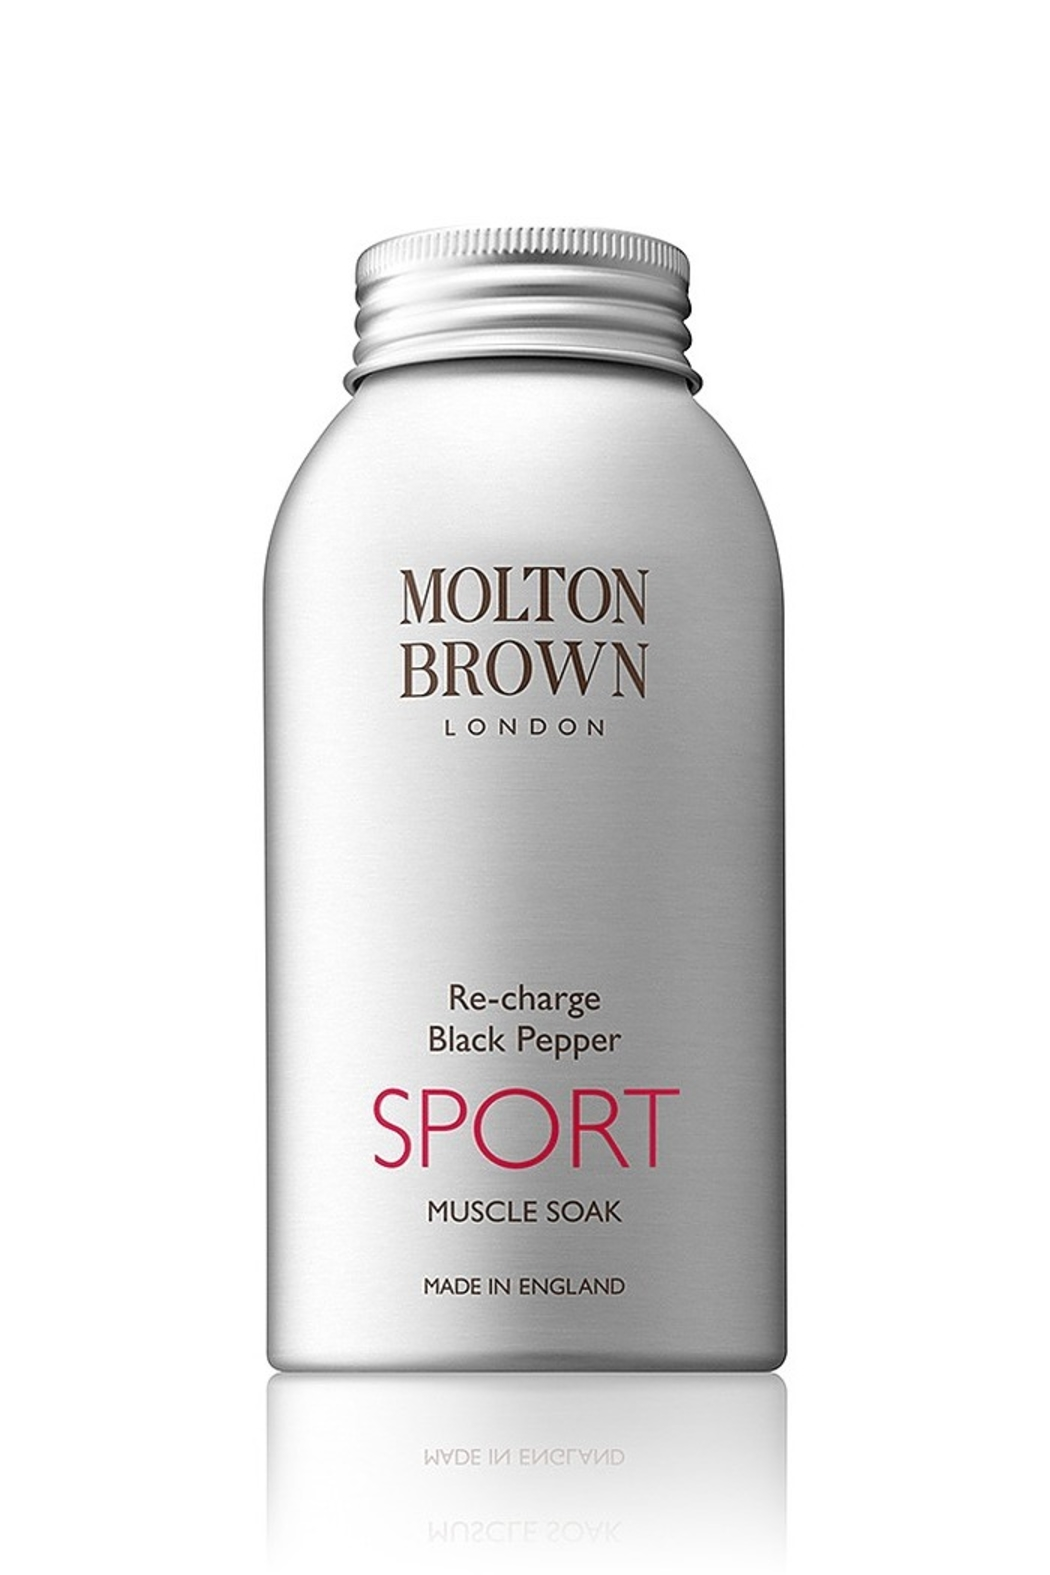 Molton Brown Re-charge Black Pepper SPORT Muscle Soak - Main Image